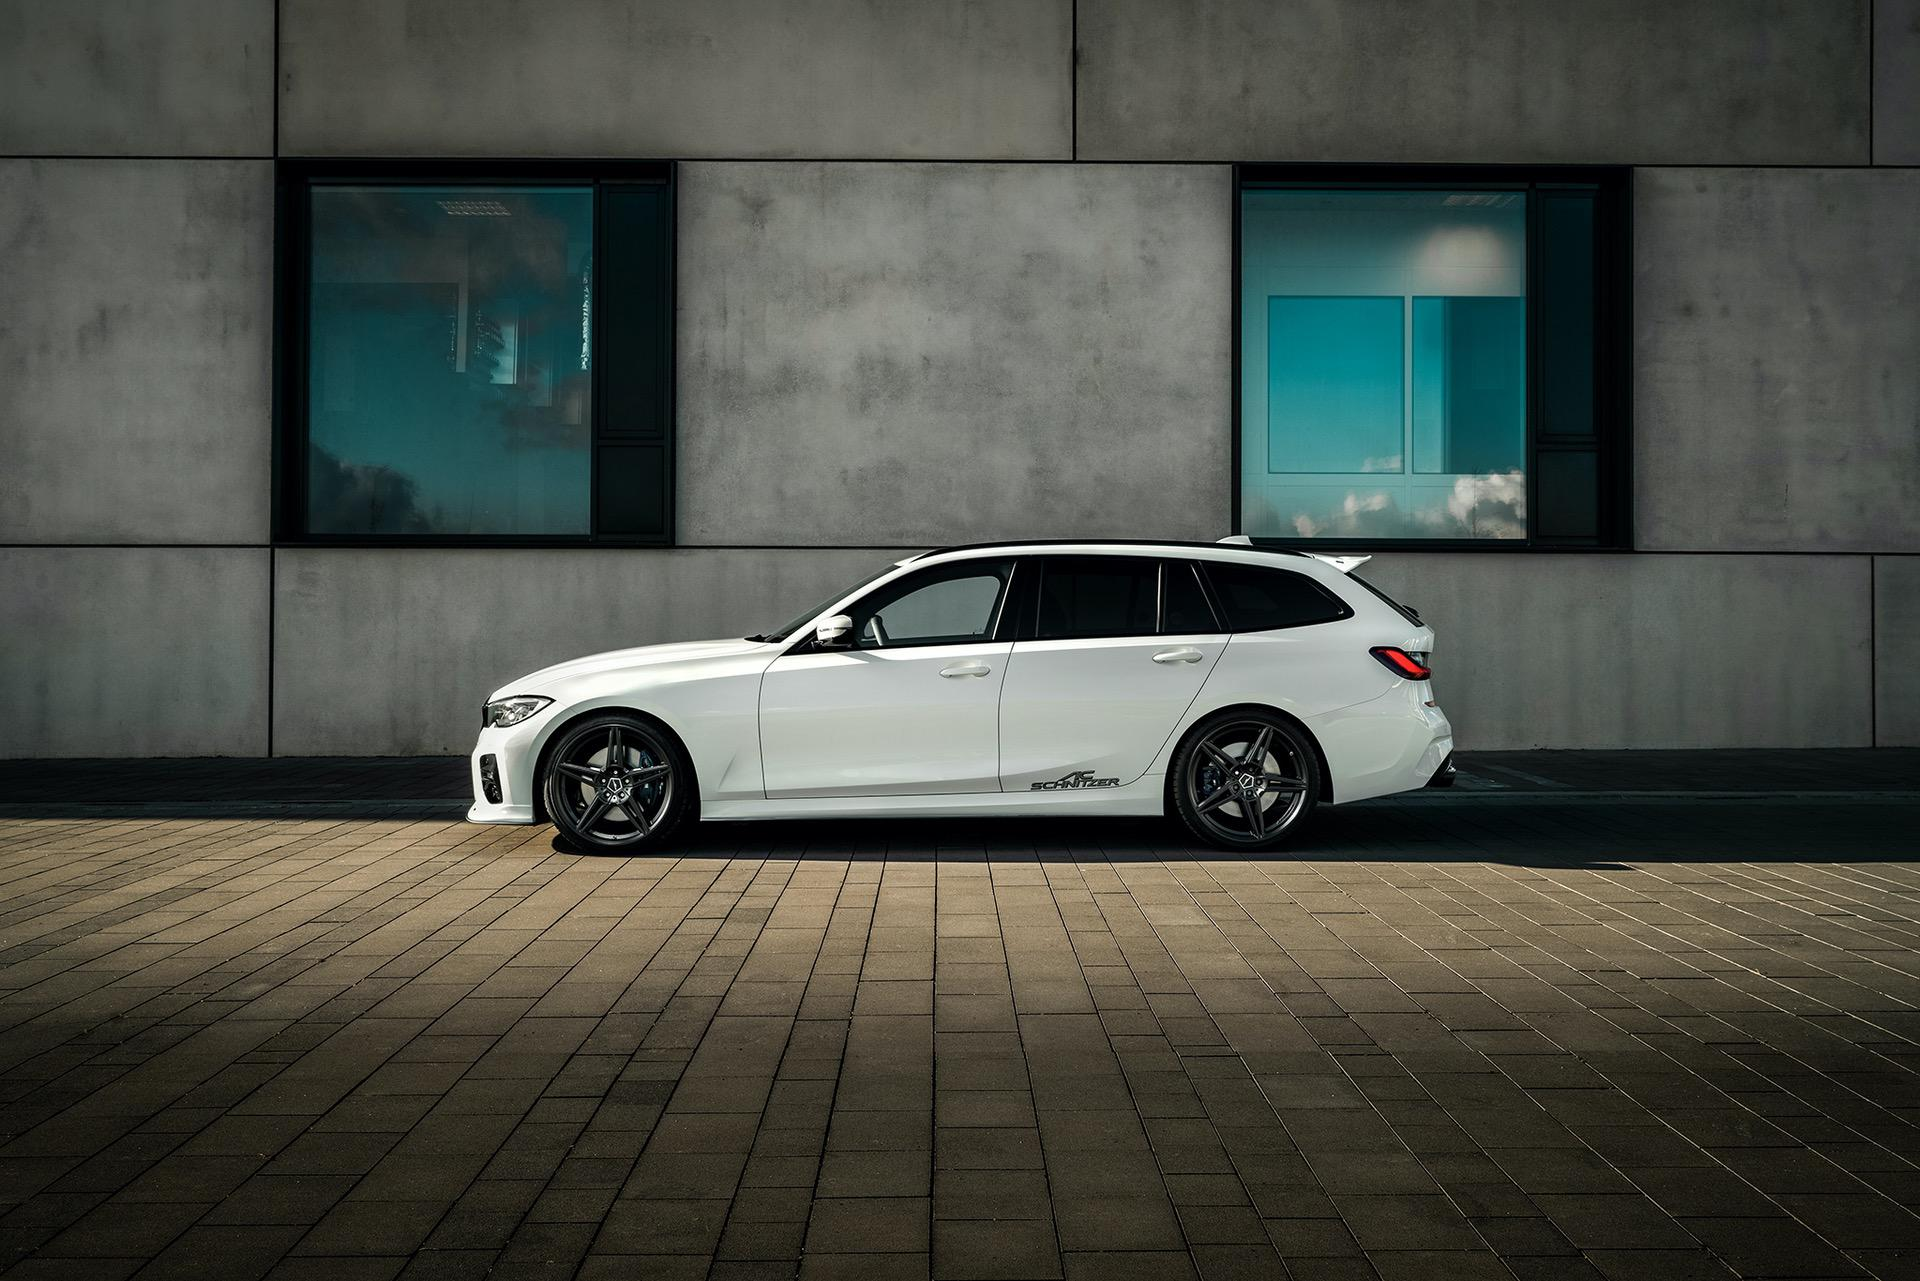 Ac Schnitzer Introduces A Tuning Program For The Bmw 3 Series Touring Upcoming Cars Library Up To Date